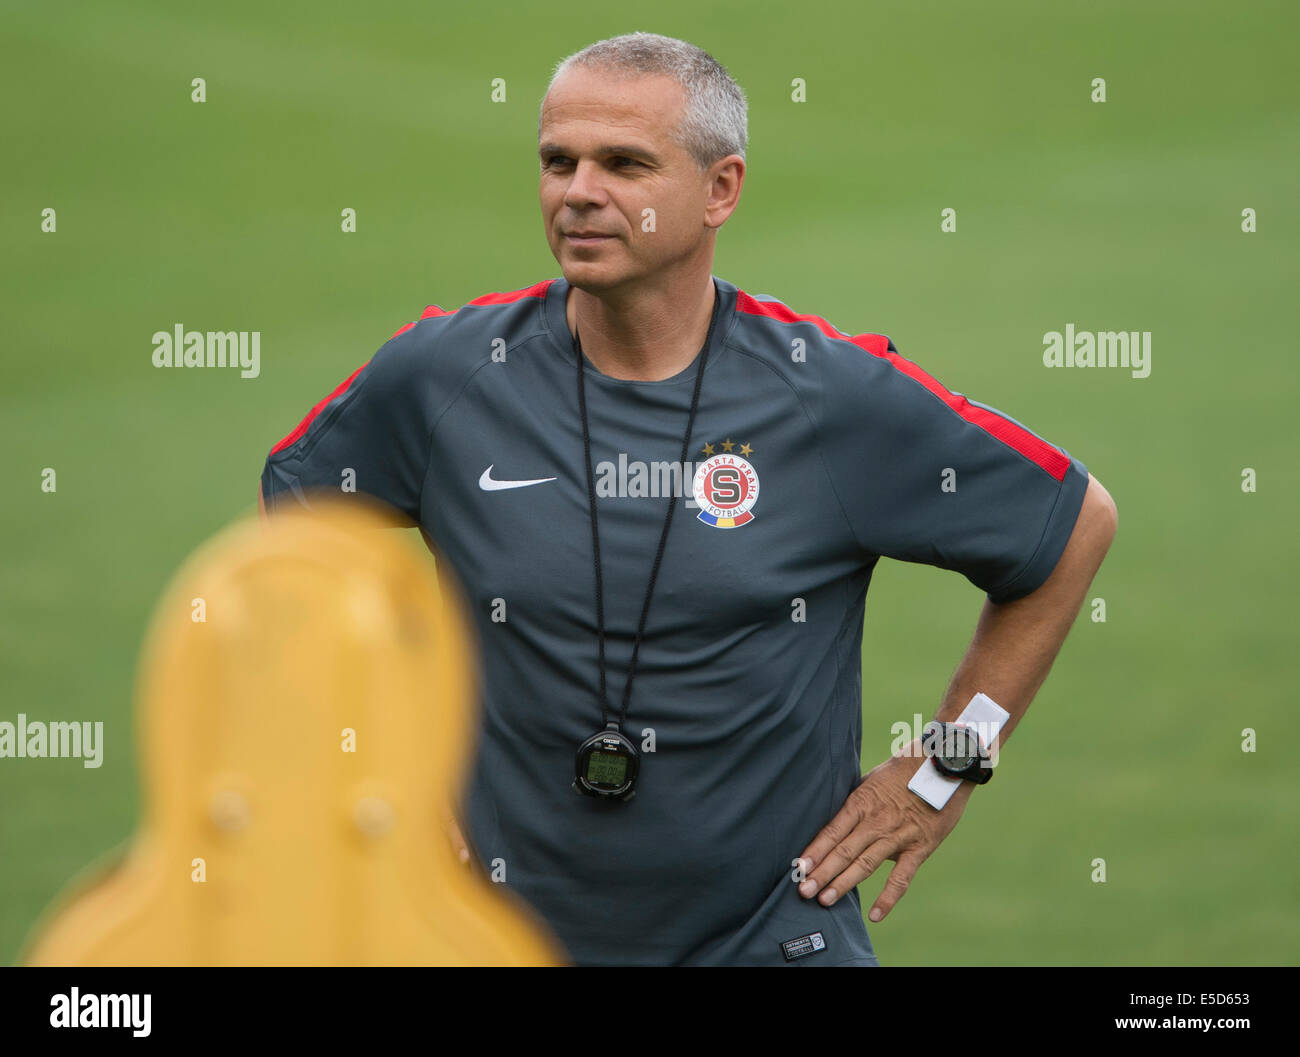 prague, czech republic. 28th july, 2014. ac sparta praha coach stock